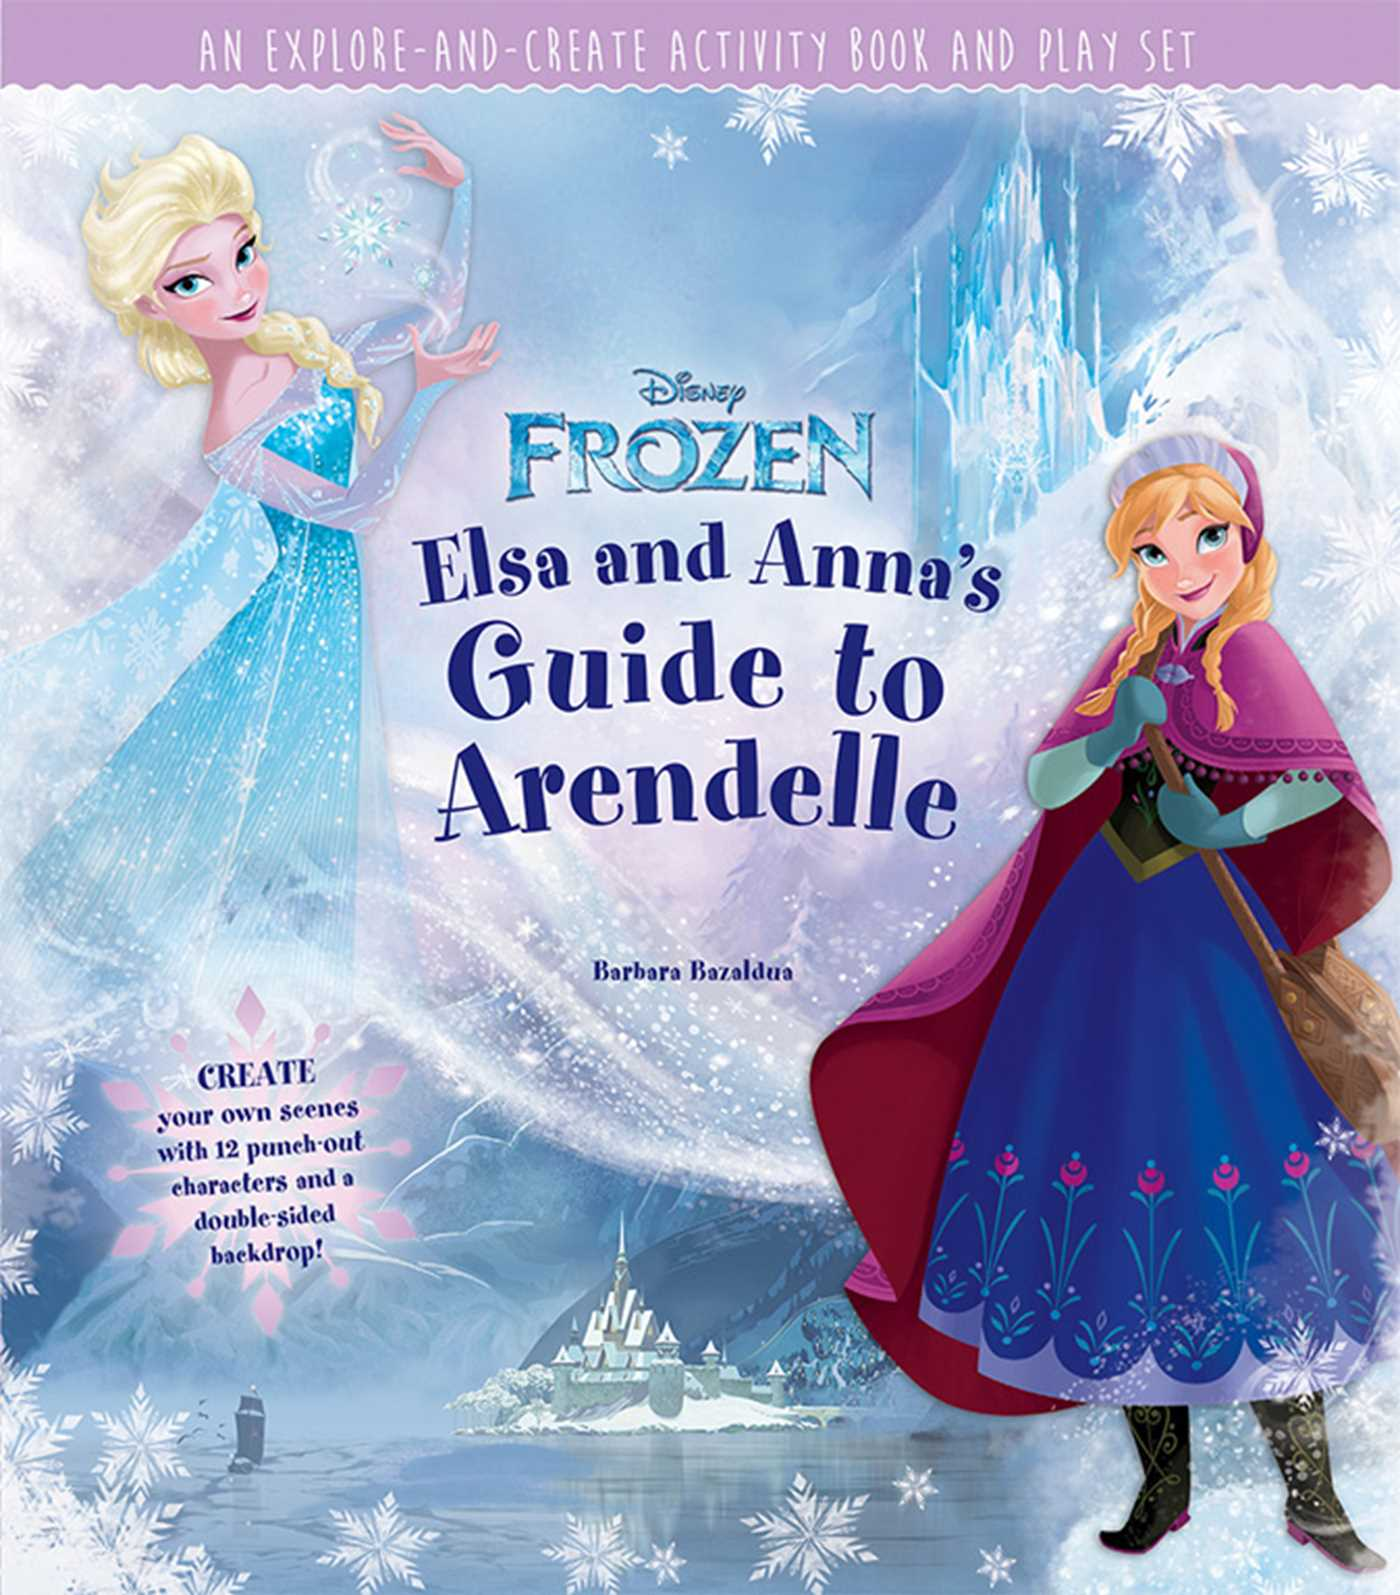 Disney frozen elsa and annas guide to arendelle 9781608876839 hr